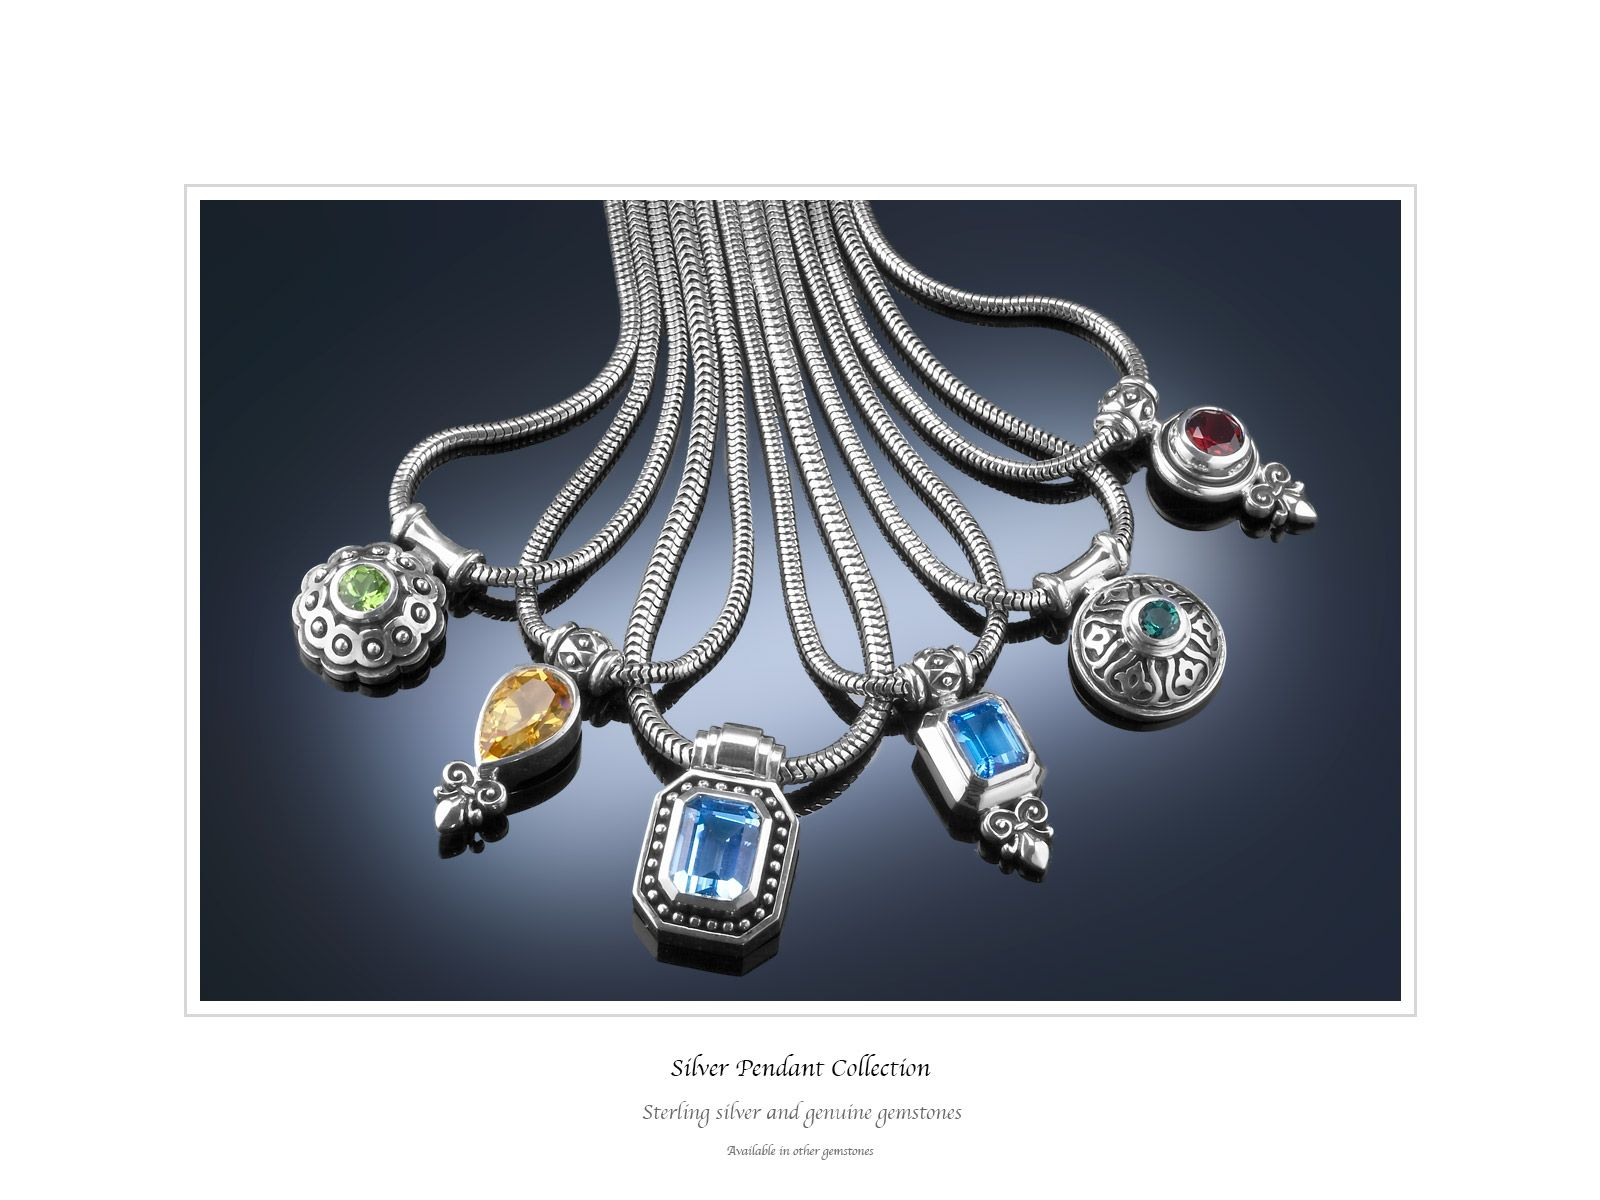 Silver-Pendant-Collection.jpg